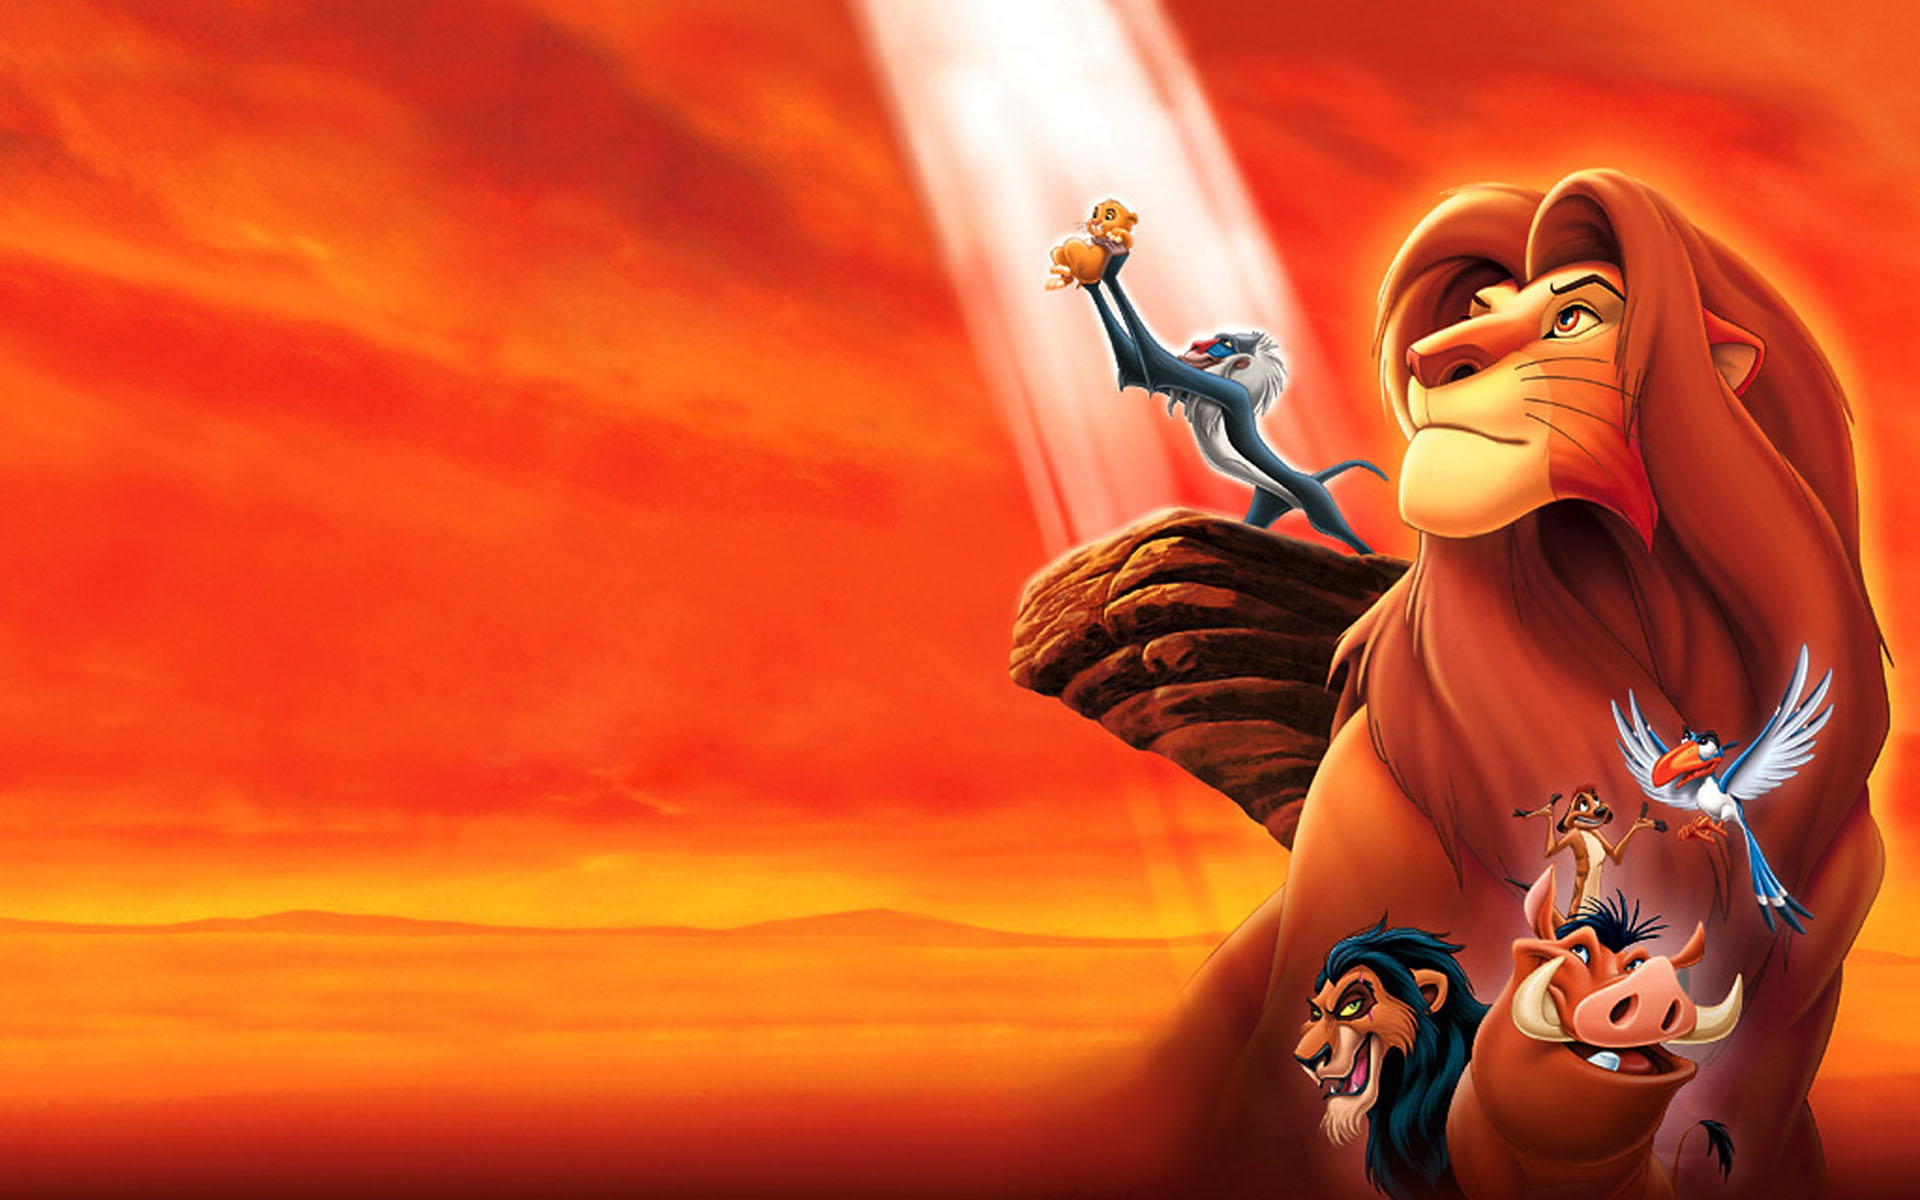 Lion King 612 Hd Wallpapers in Cartoons   Imagescicom 1920x1200